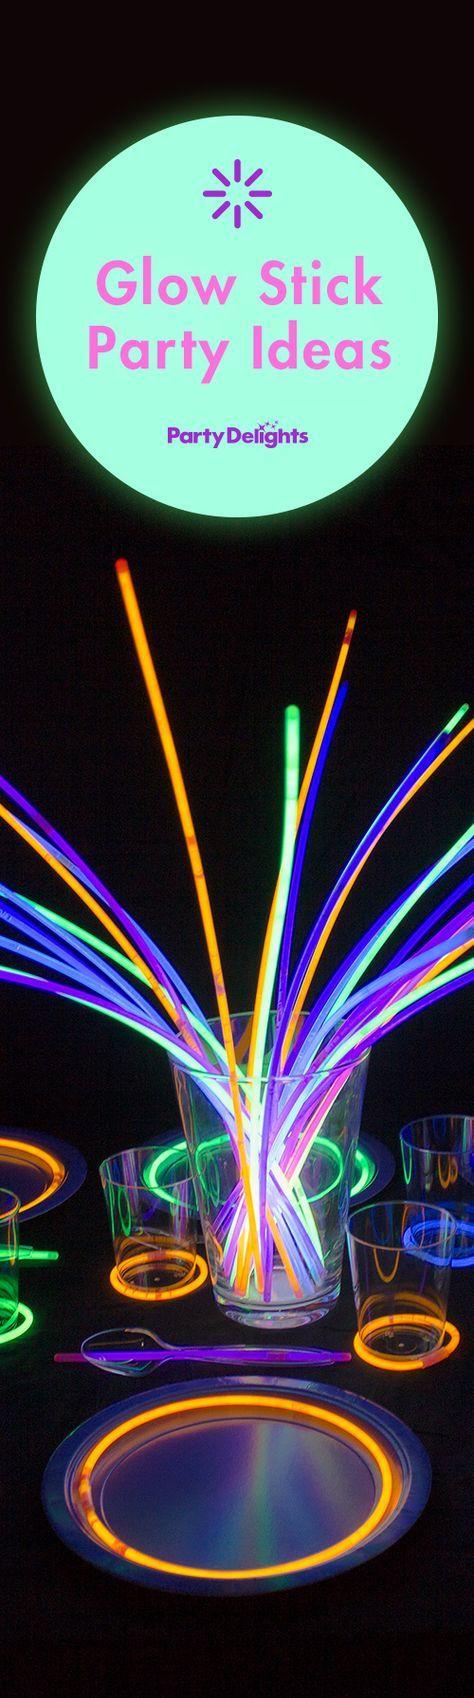 Glow stick party ideas for kids birthdays, neon parties and any other occasion!